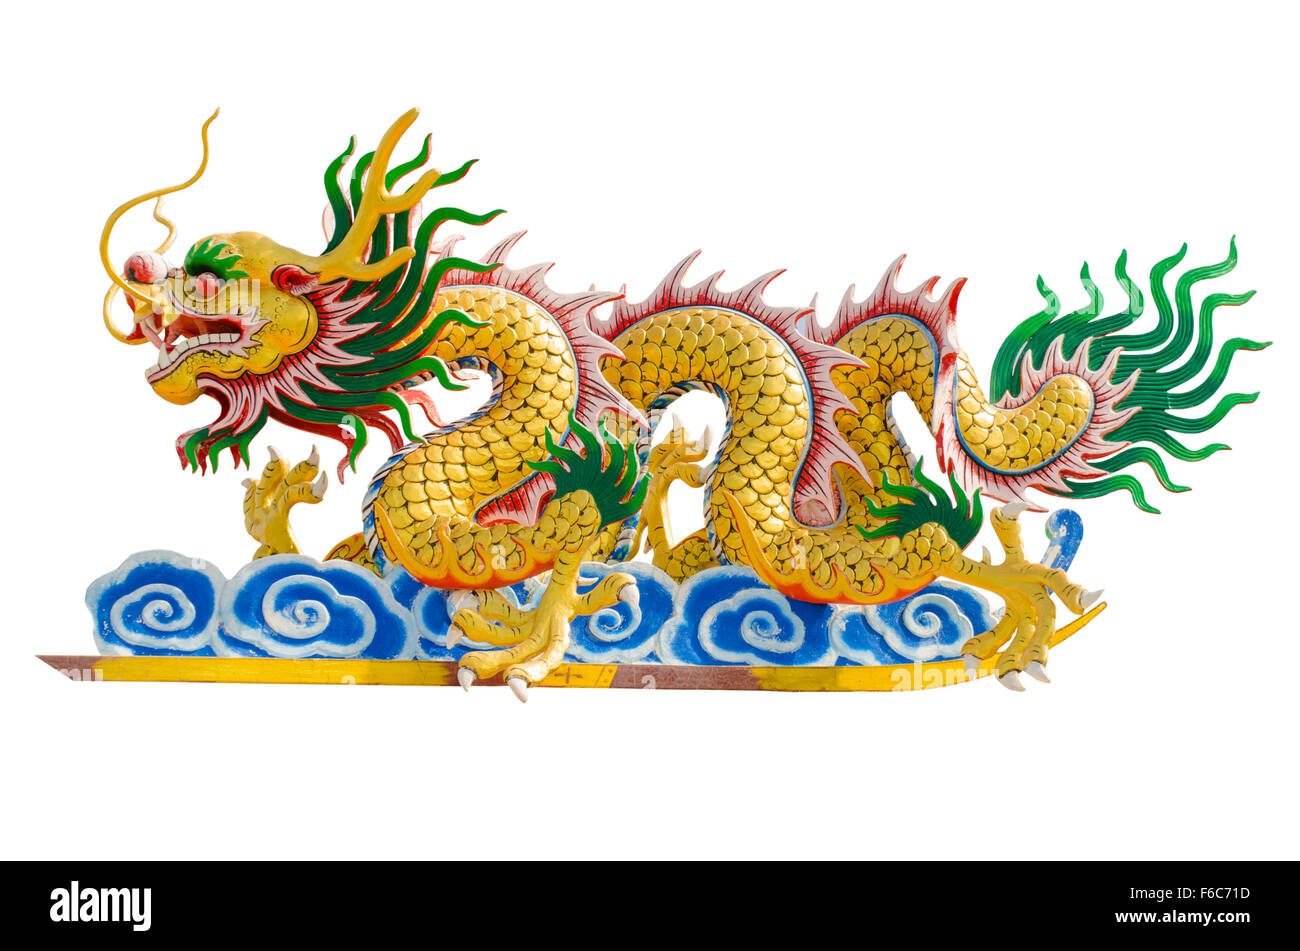 Chinese dragon image on white backgrounds. - Stock Image